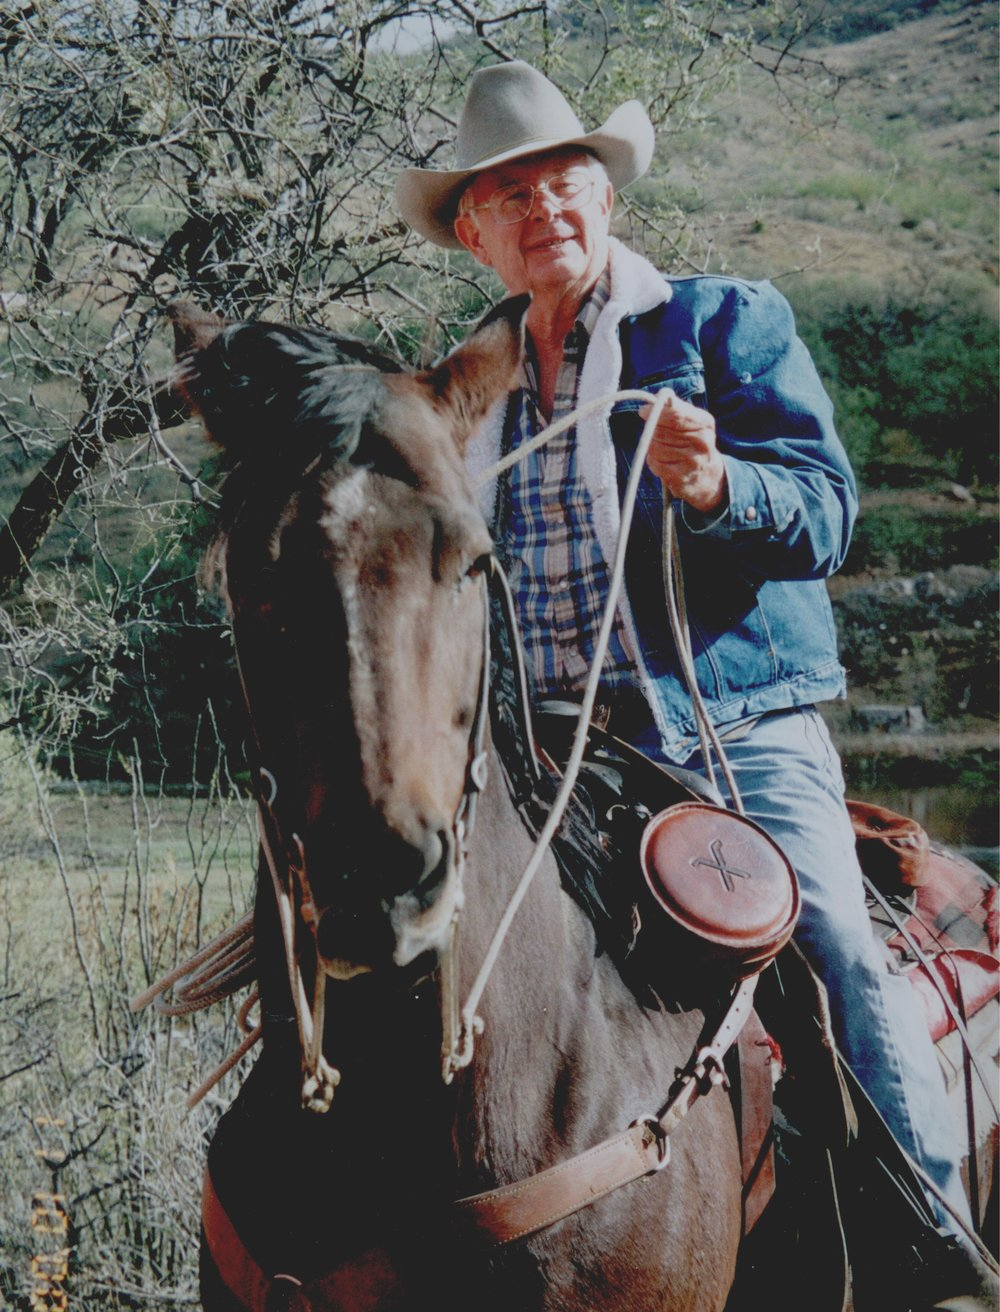 Jim Chilton ranches along the Arizona - Mexico border.  He witnesses hundreds of illegal border crossings each year on his 50,000 acre cattle ranch.